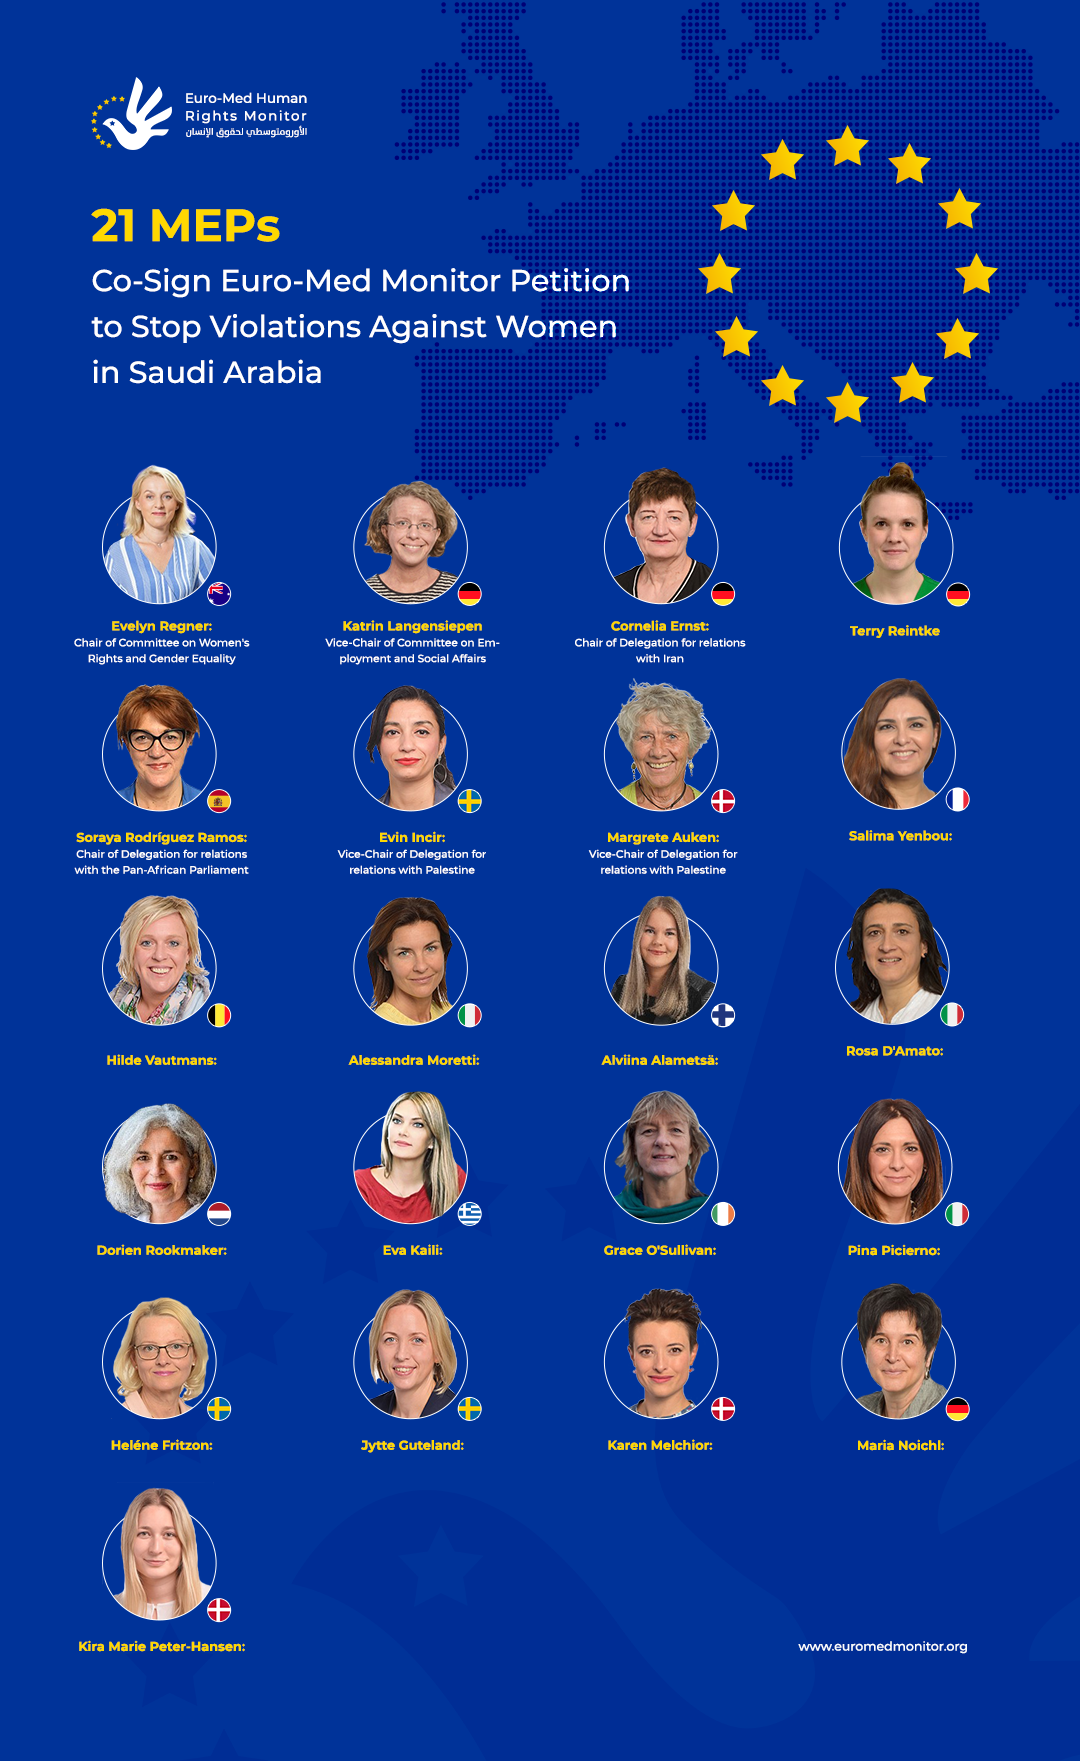 21 Women MEPs Co-Sign Euro-Med Monitor Petition to Stop Violations Against Women in Saudi Arabia